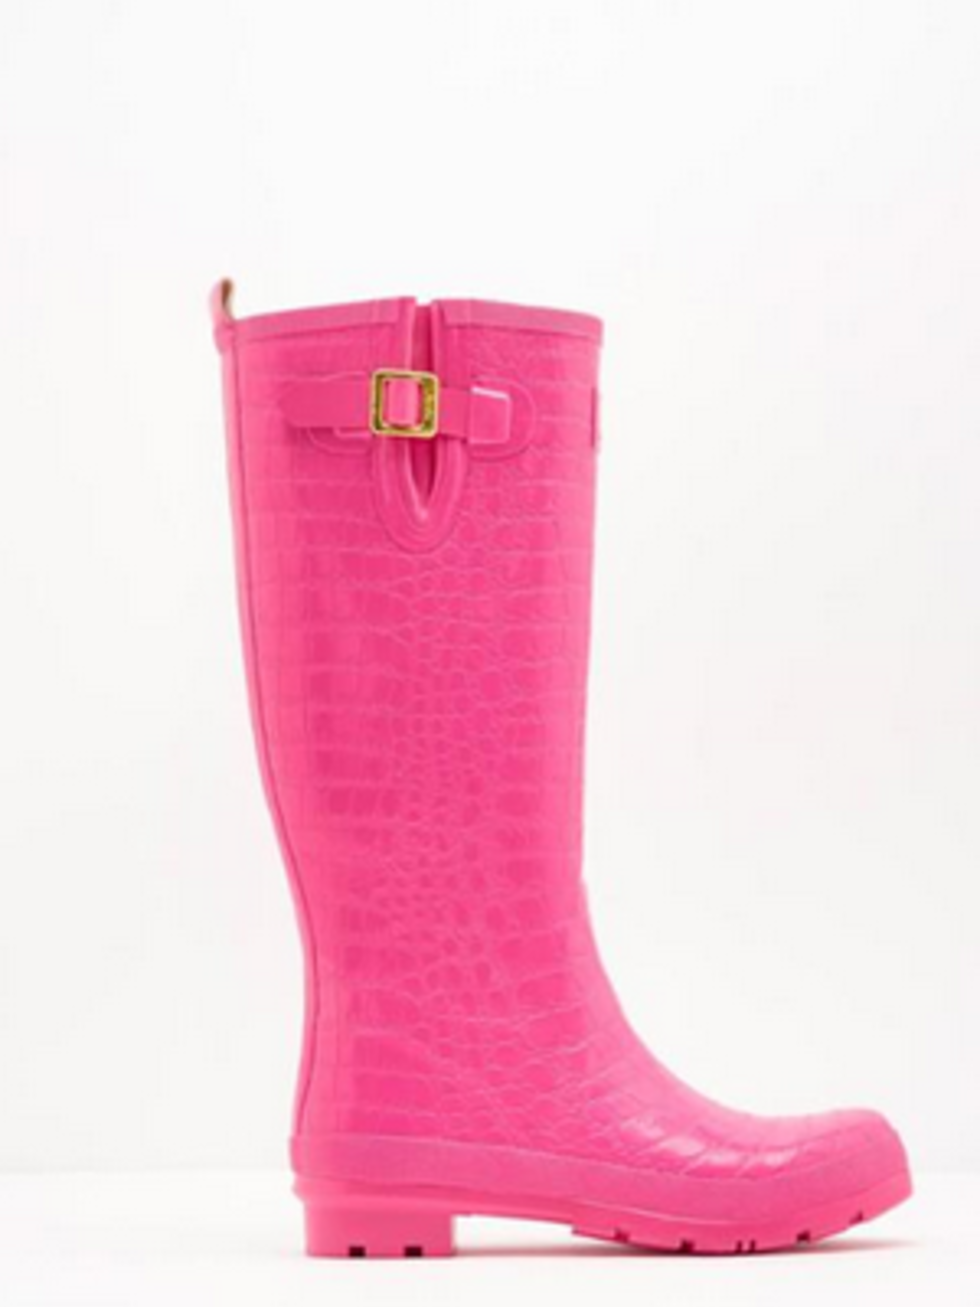 Crockington Textured Rain Boots, $84.95